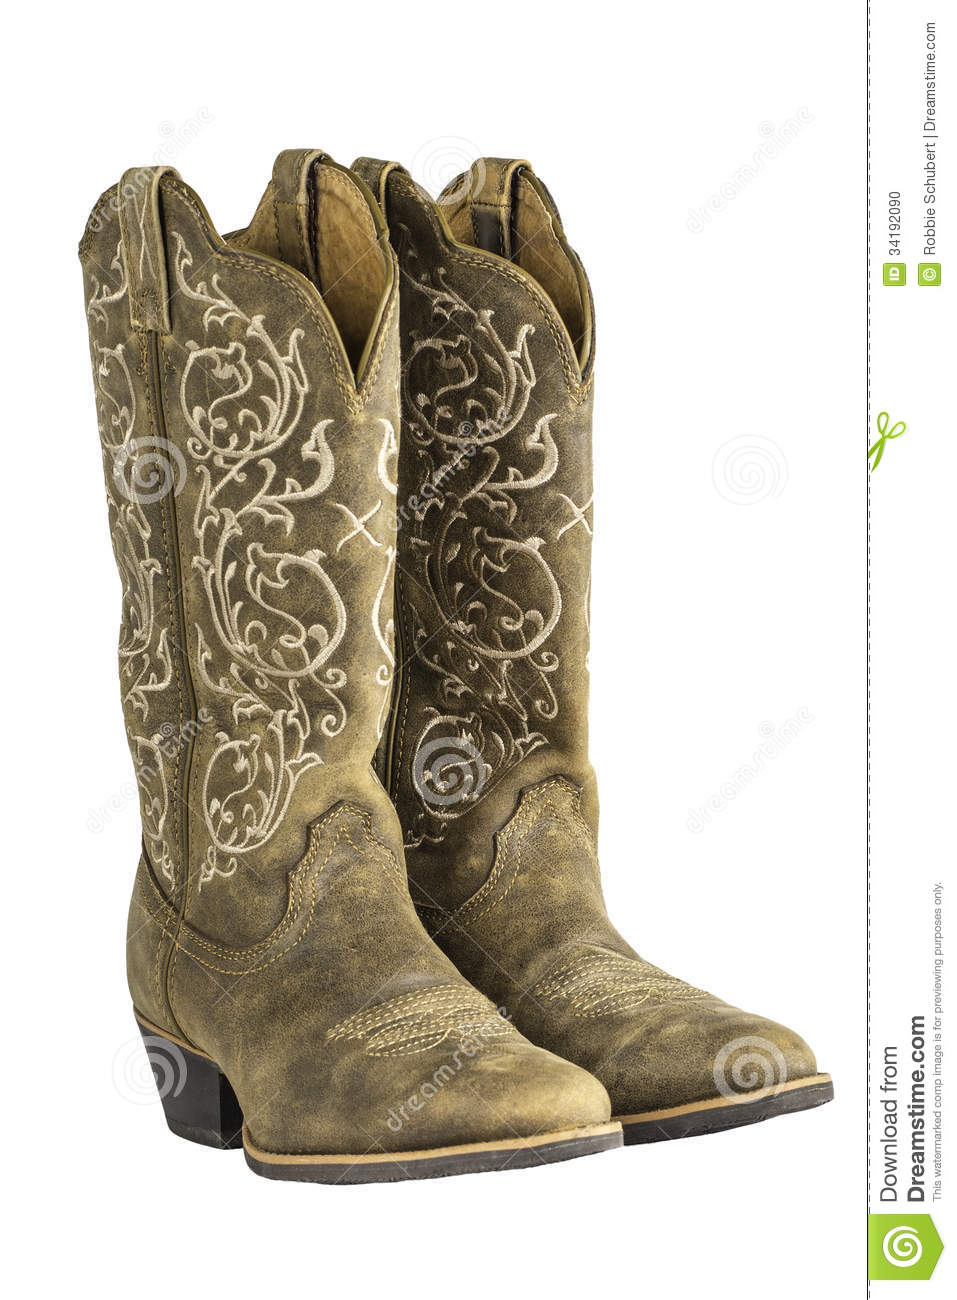 ladies brown western cowboy boots stock photo image